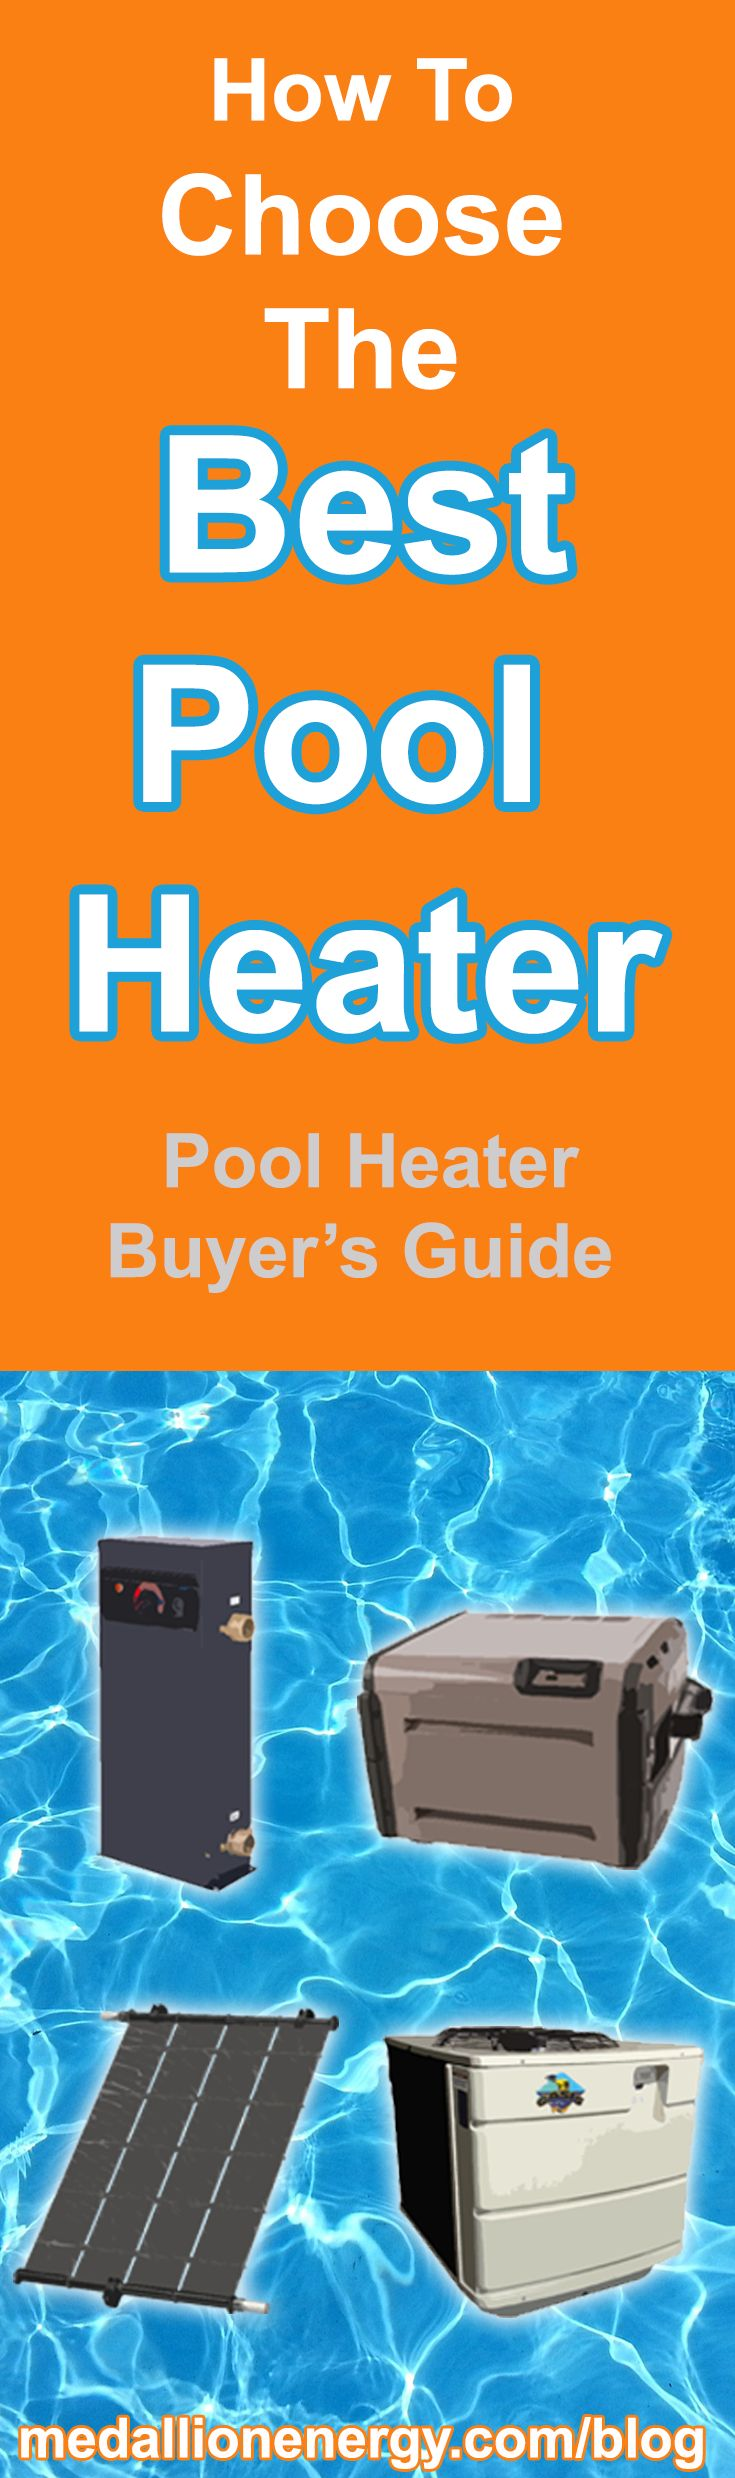 17 best ideas about pool heater on pinterest solar pool for Best heating options